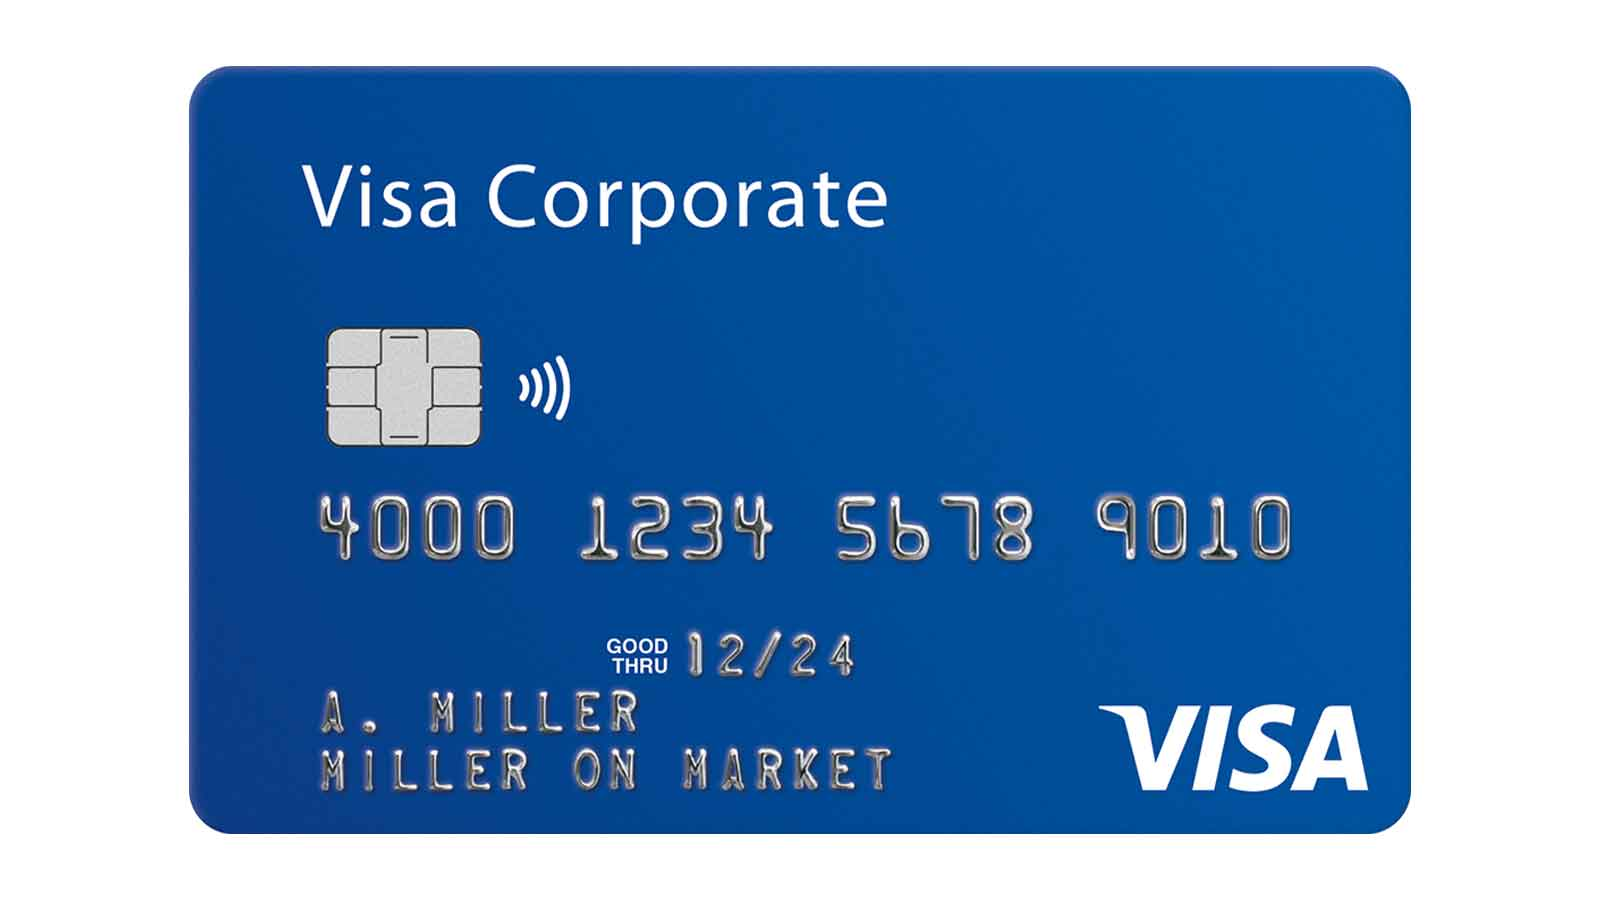 Visa Corporate Card